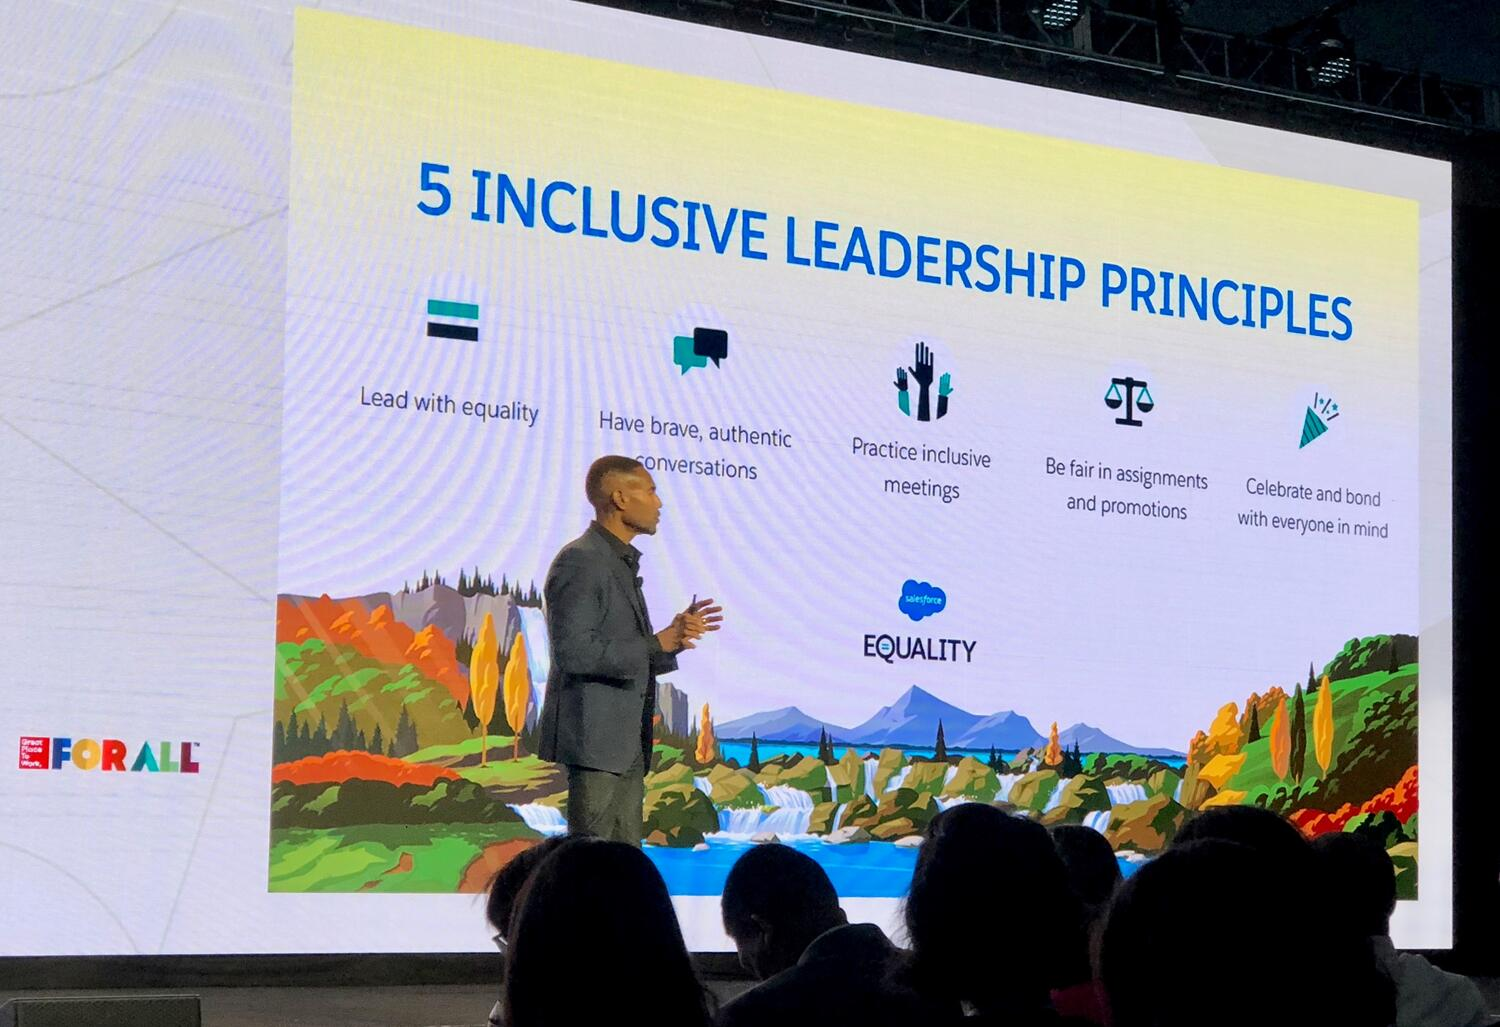 Tony Prophet, Chief Equality Officer of Salesforce delivers the Summit's Closing Keynote